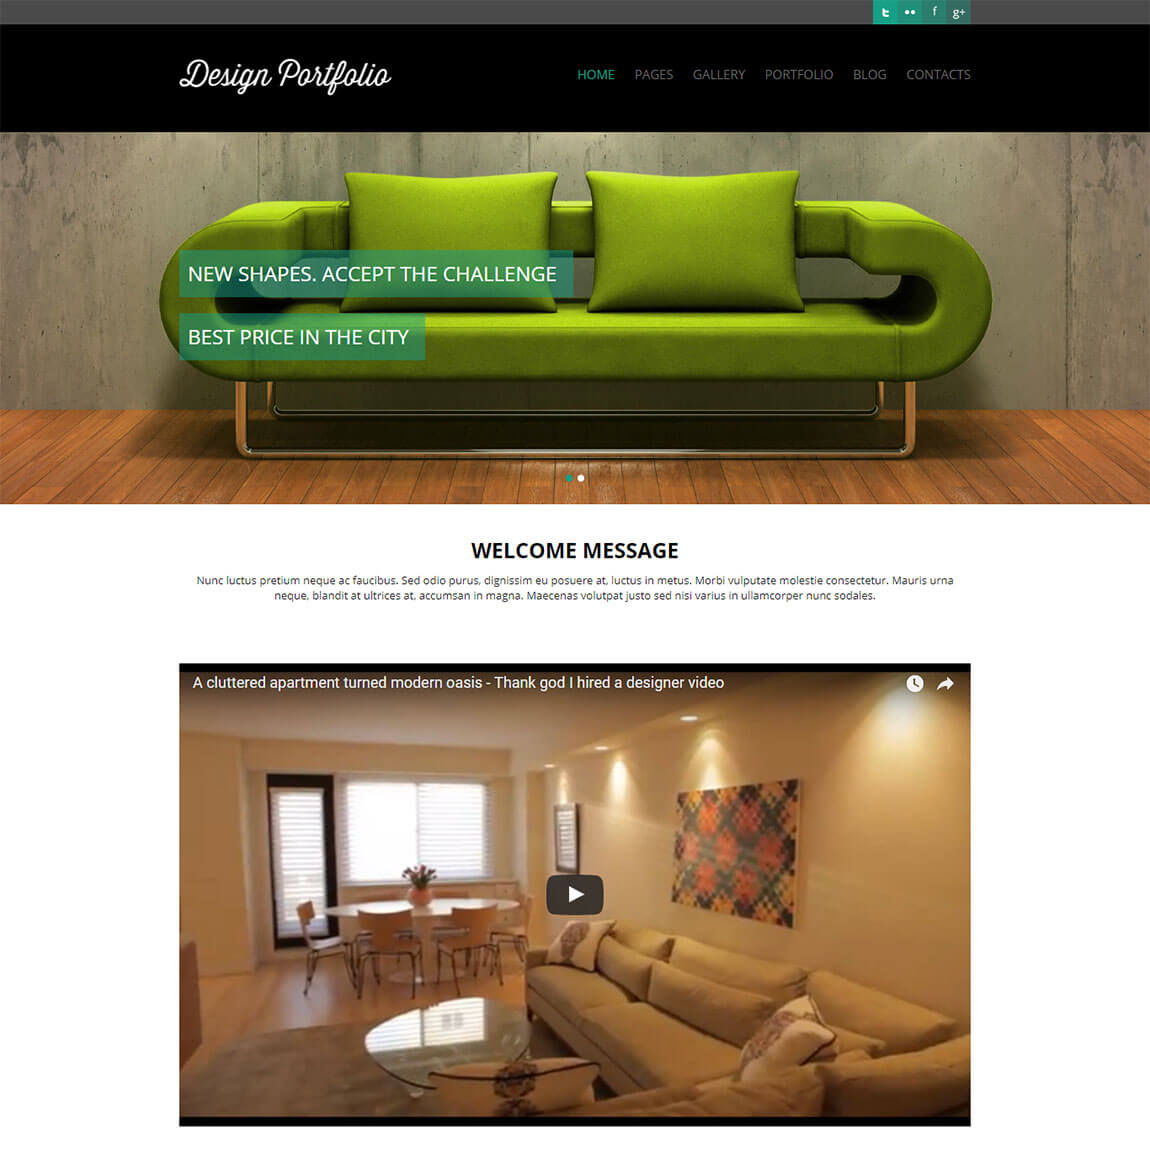 design-portfolio-wordpress-portfolio-theme-for-designers